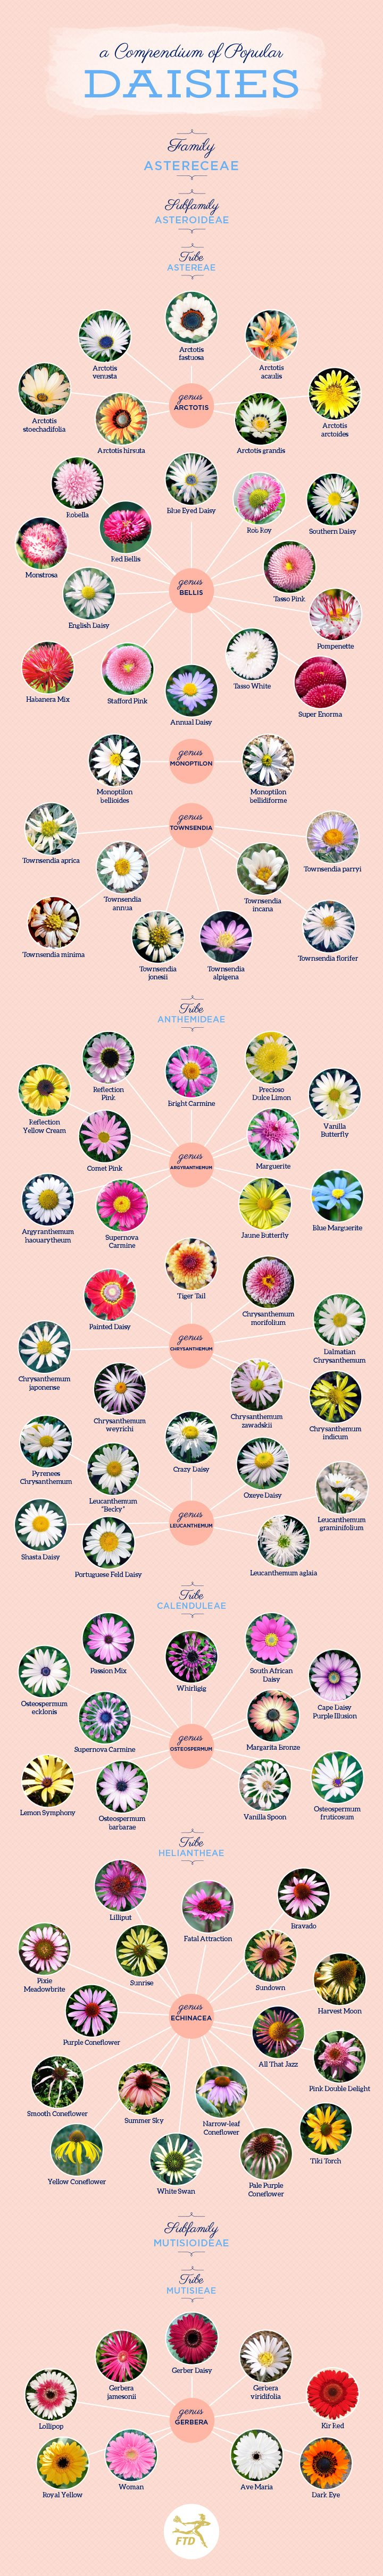 We've created a compendium with 94 types of daisies, including the most popular varieties: English daisies, Shasta daisies, Gerbera daisies, and Painted daisies.